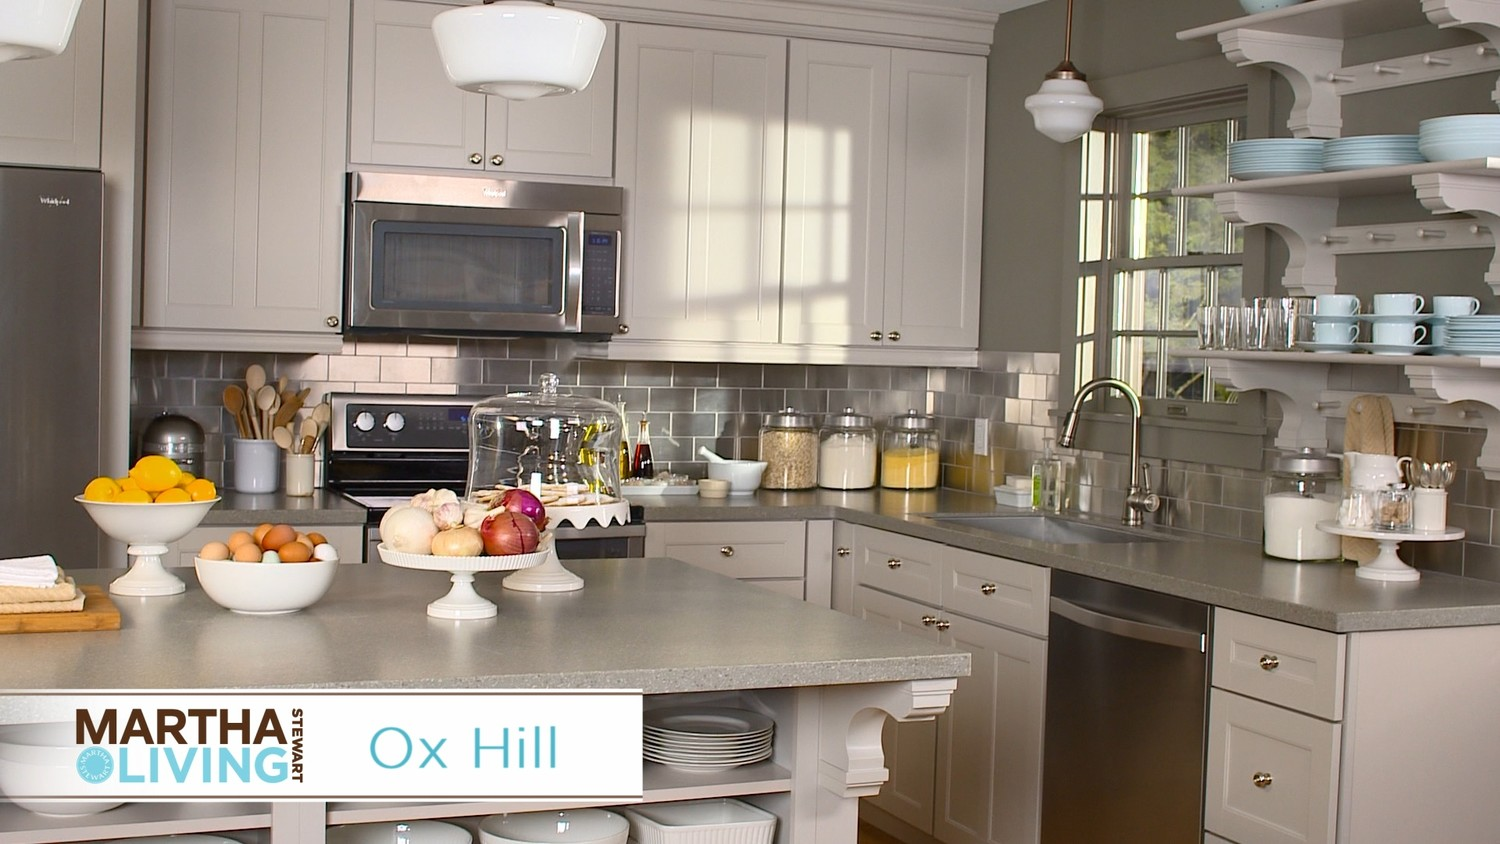 Video: New Martha Stewart Living Kitchens At The Home